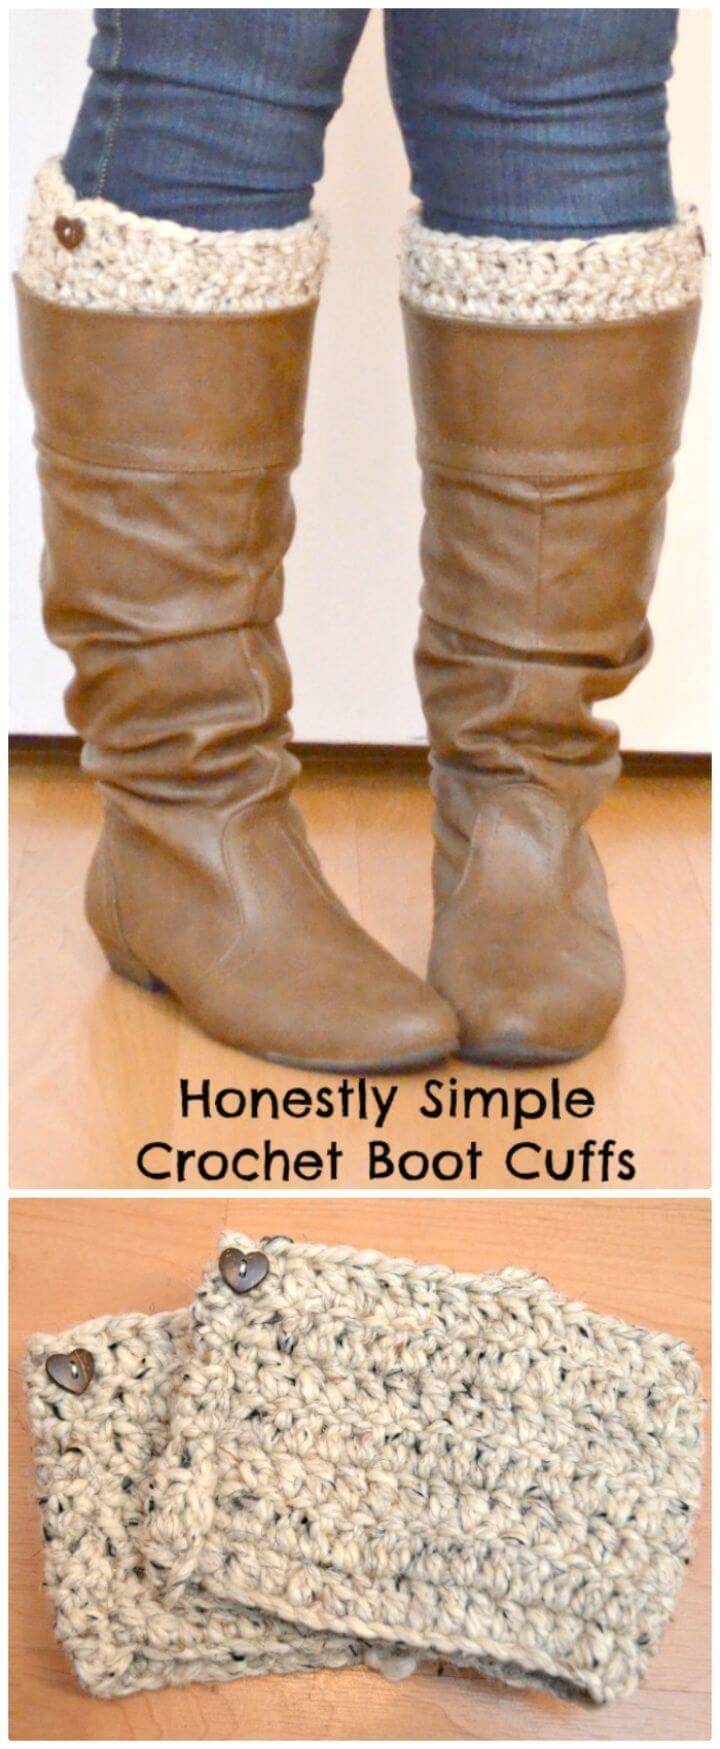 Easy Crochet Honestly Simple Boot Cuffs - Free Pattern